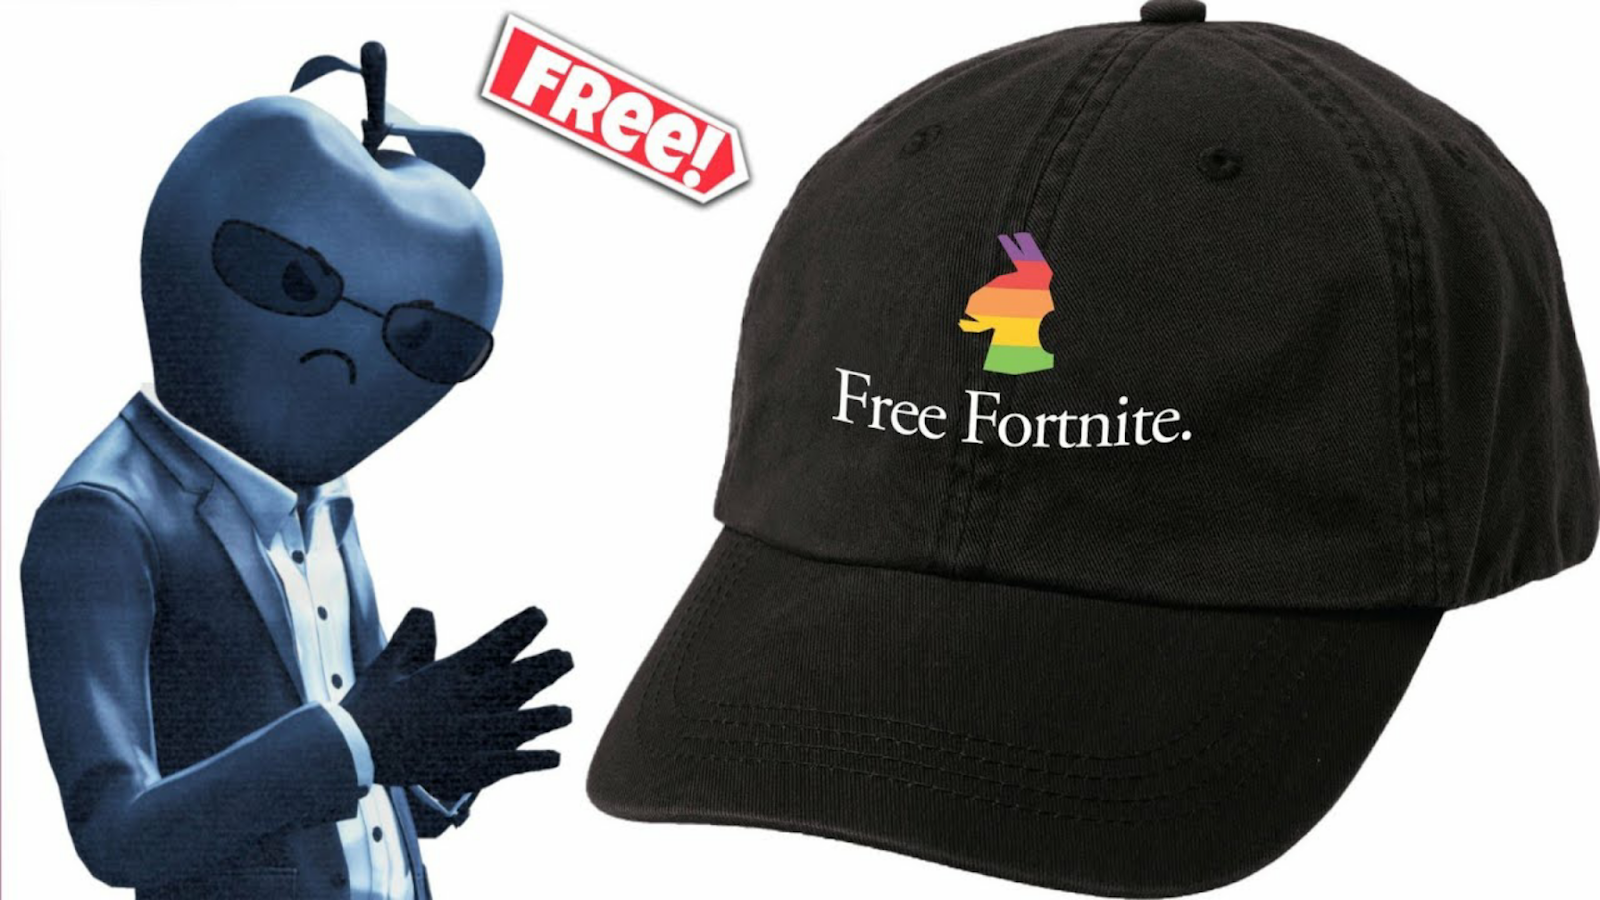 FreeFortnite Cup Prizes